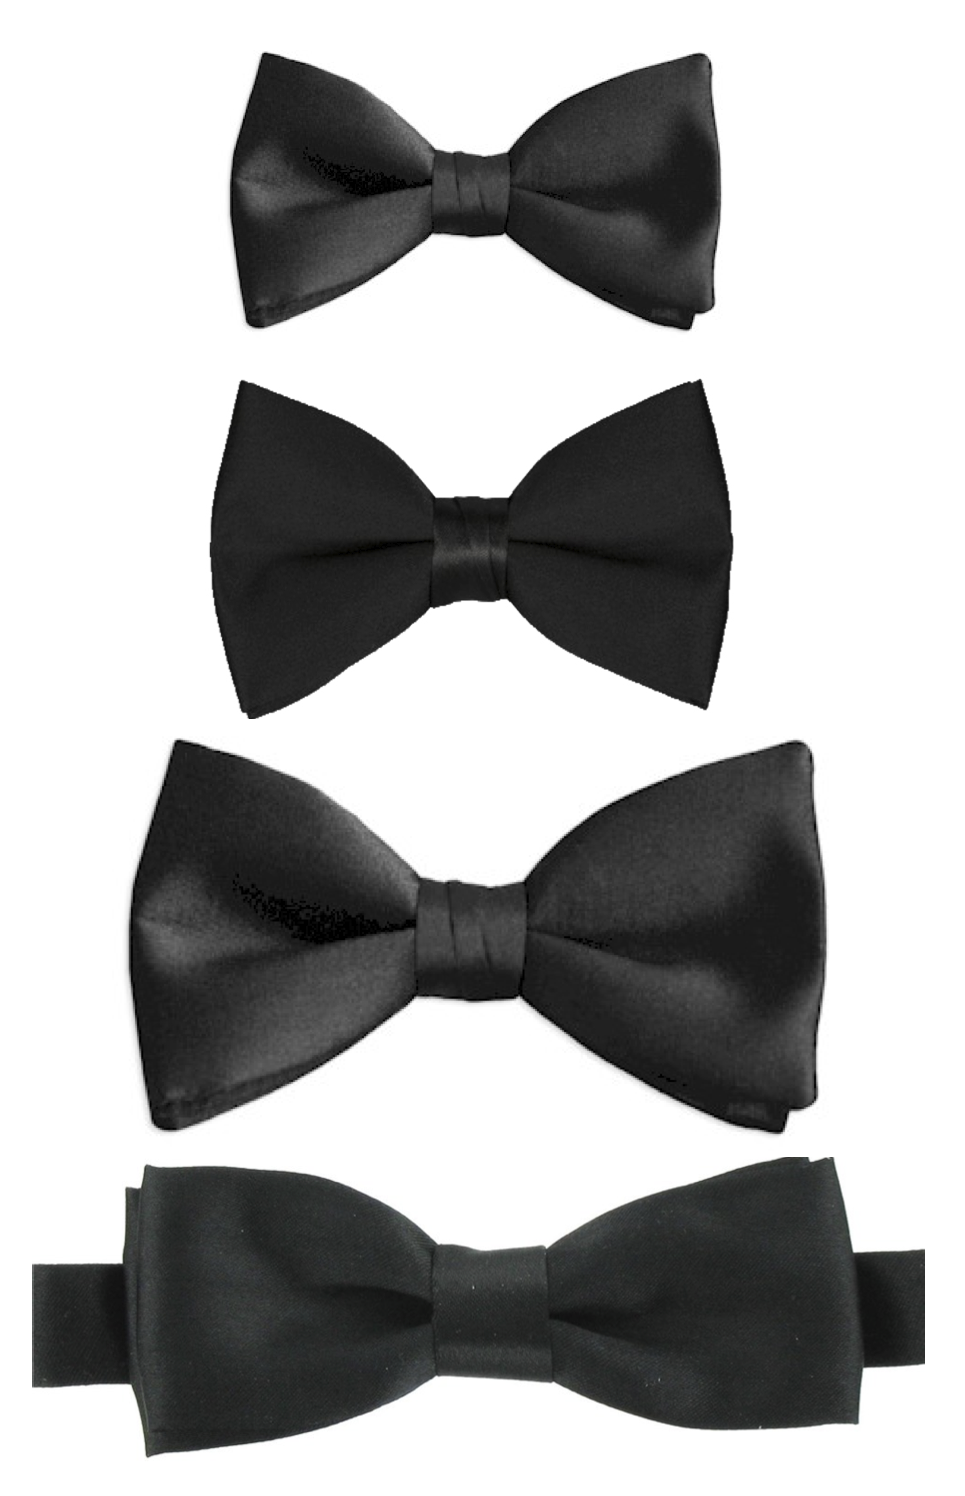 Banded iconic style the elegant distinctive bow tie house appeal timeless elegance the classic black bow tie ccuart Image collections